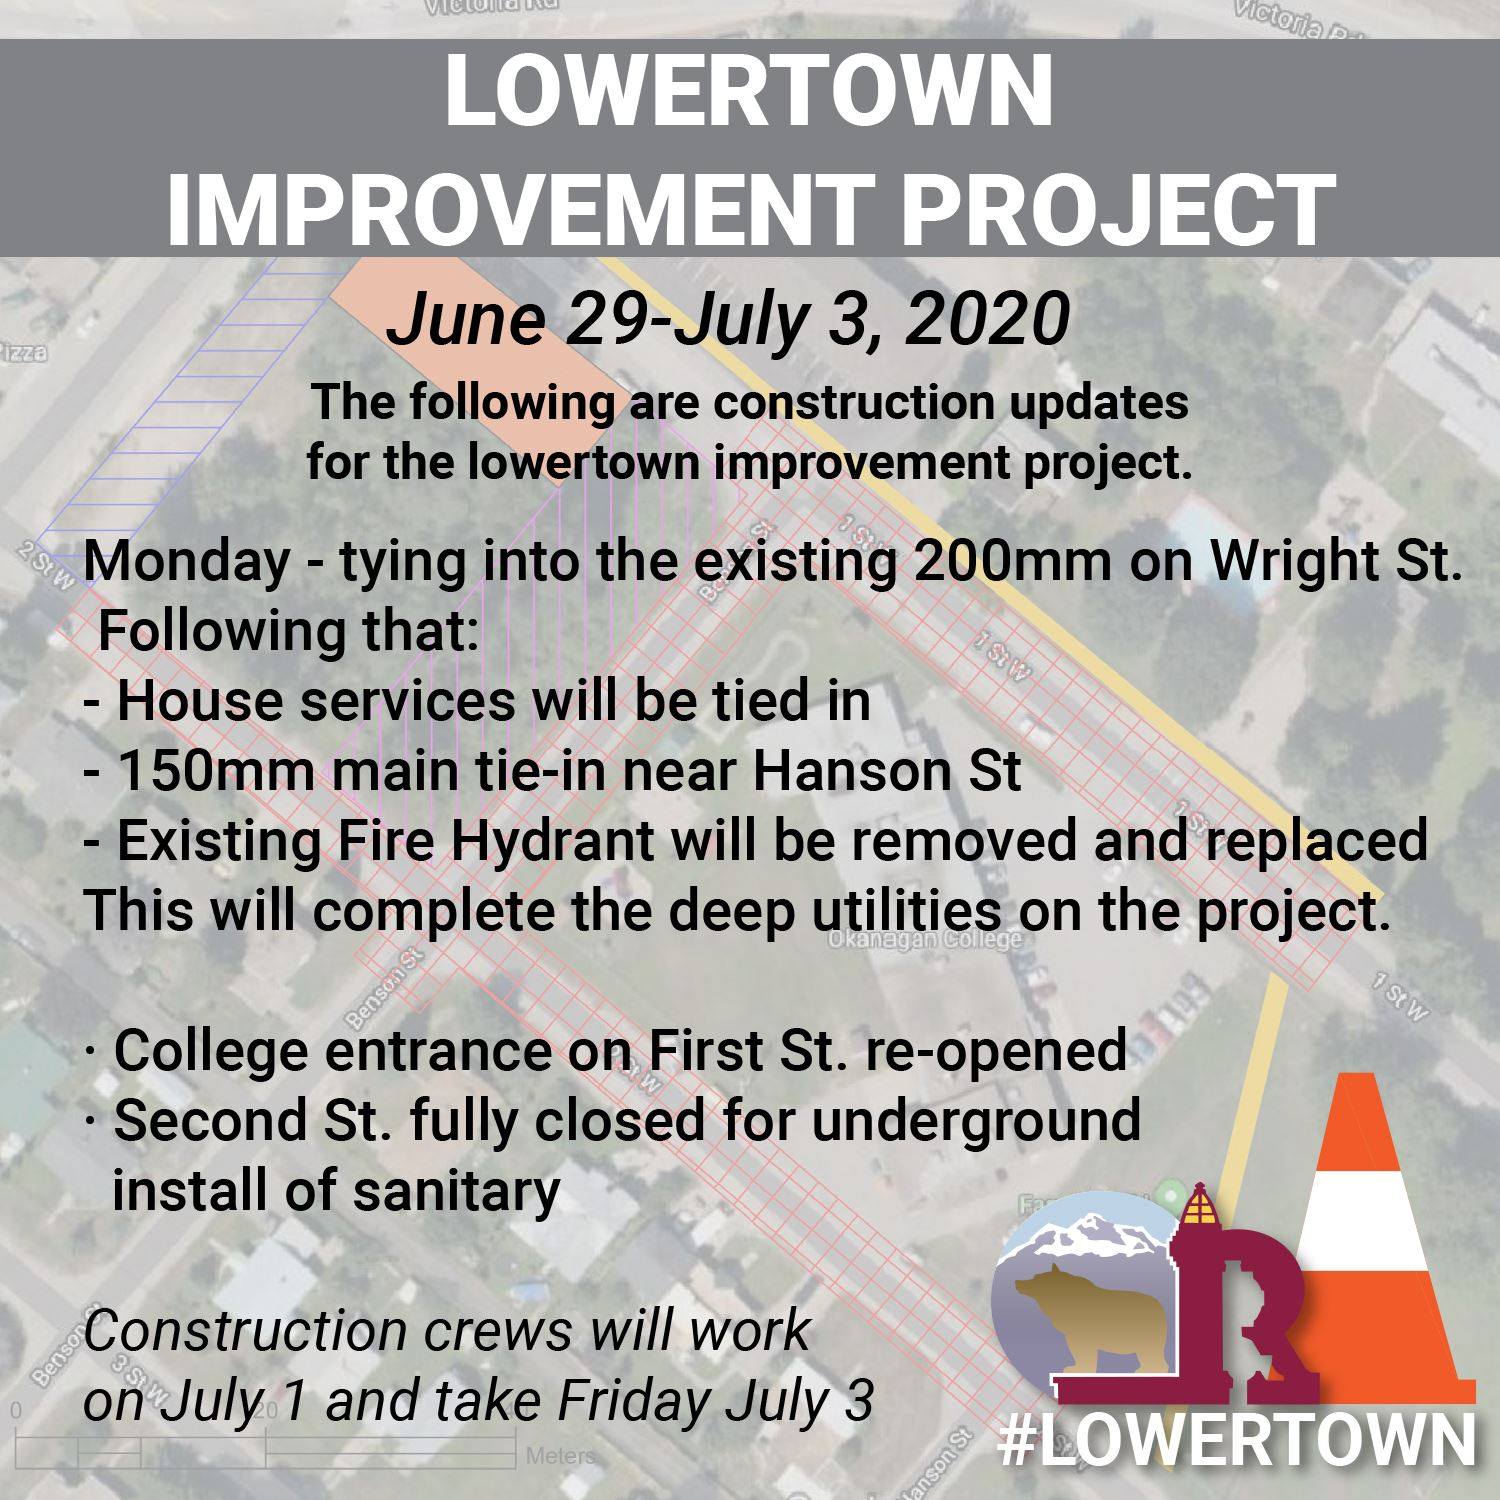 Lowertown_Construction Updates_2020-06-29